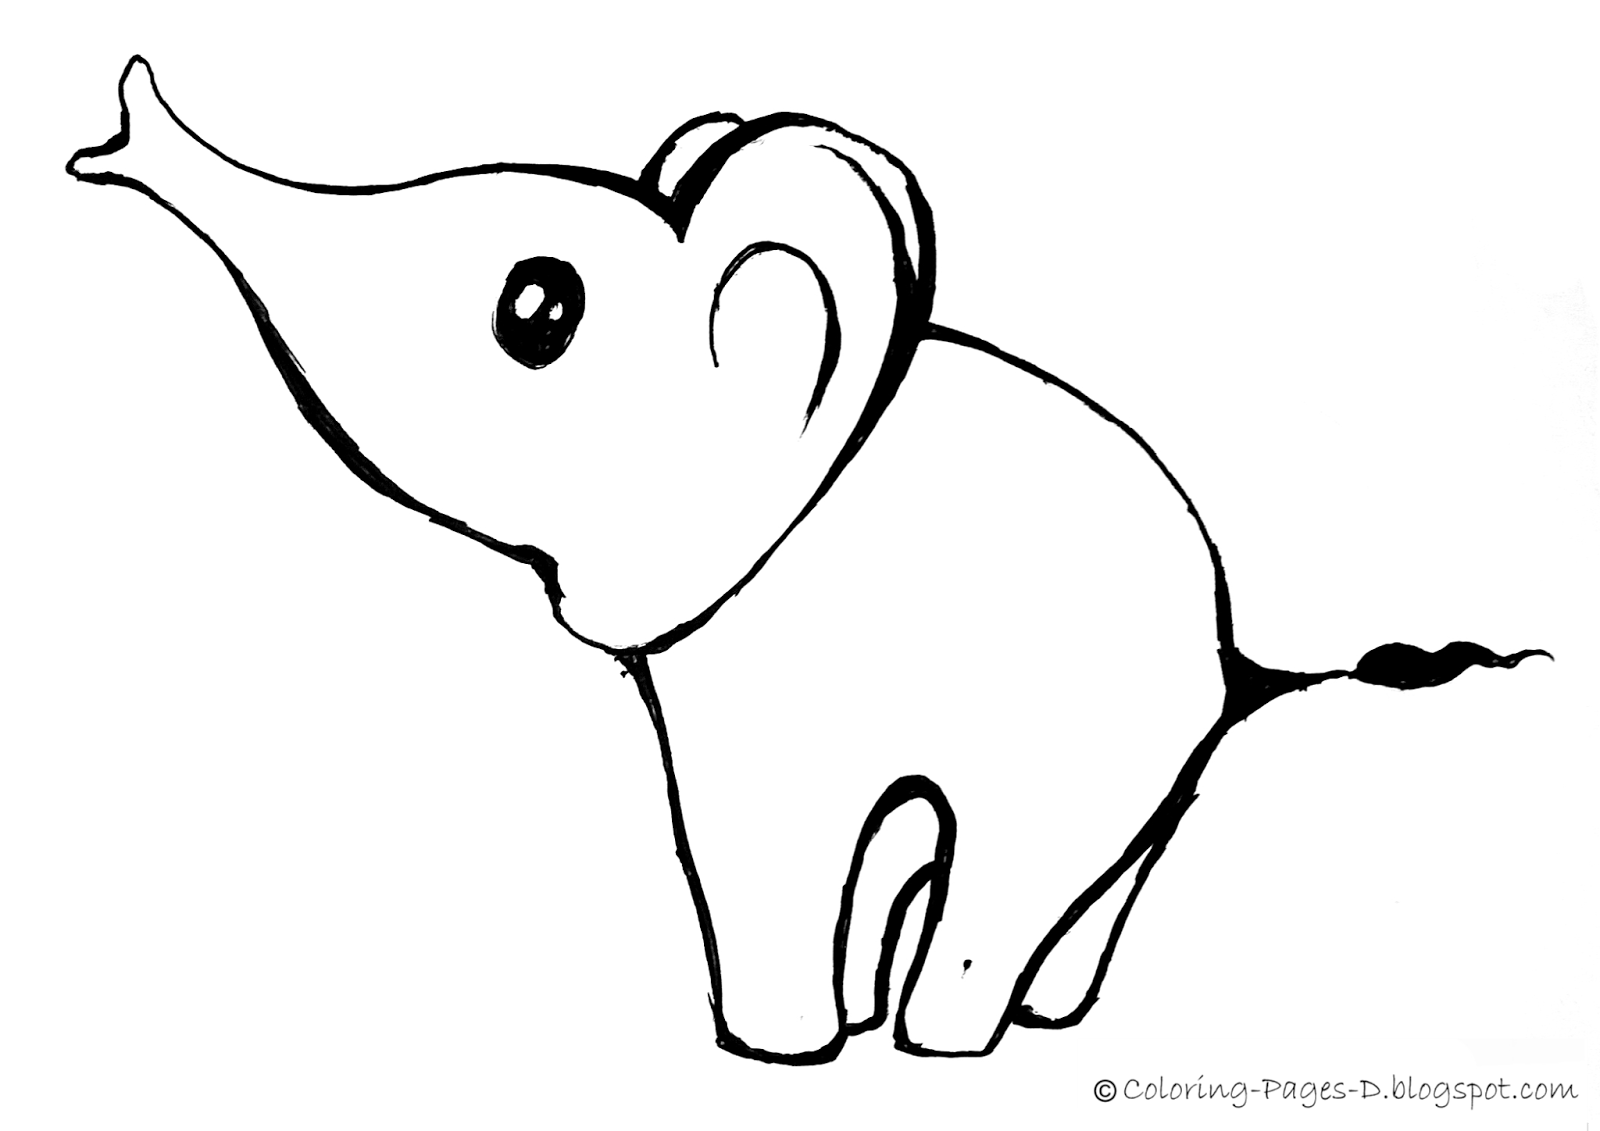 coloring pages D: Free Elephant Coloring Pages